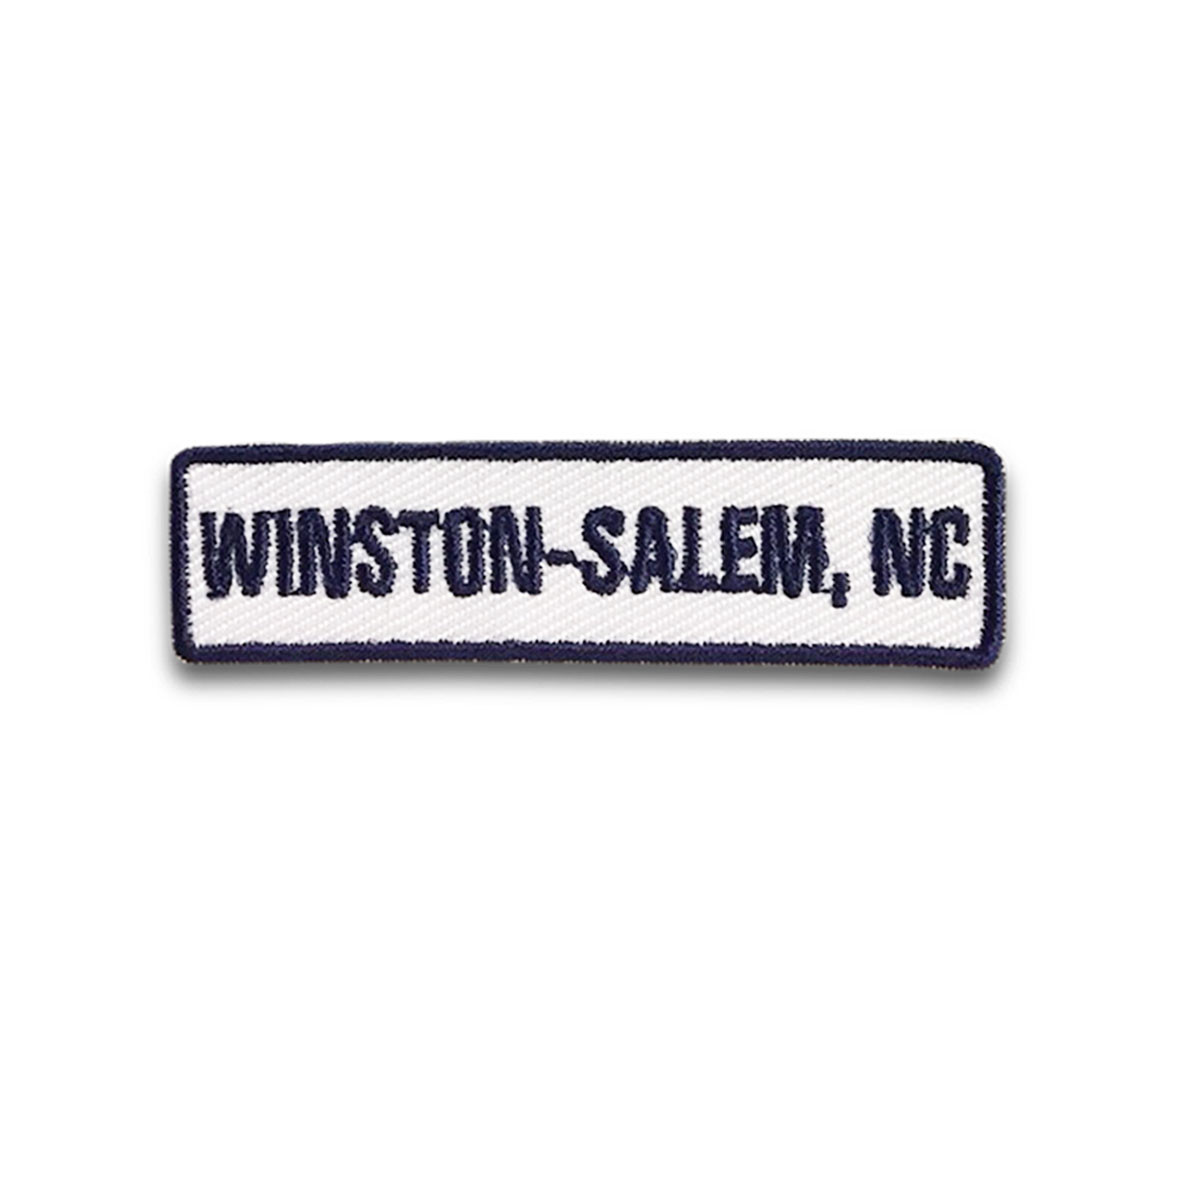 Winston-Salem, NC Rocker Patch